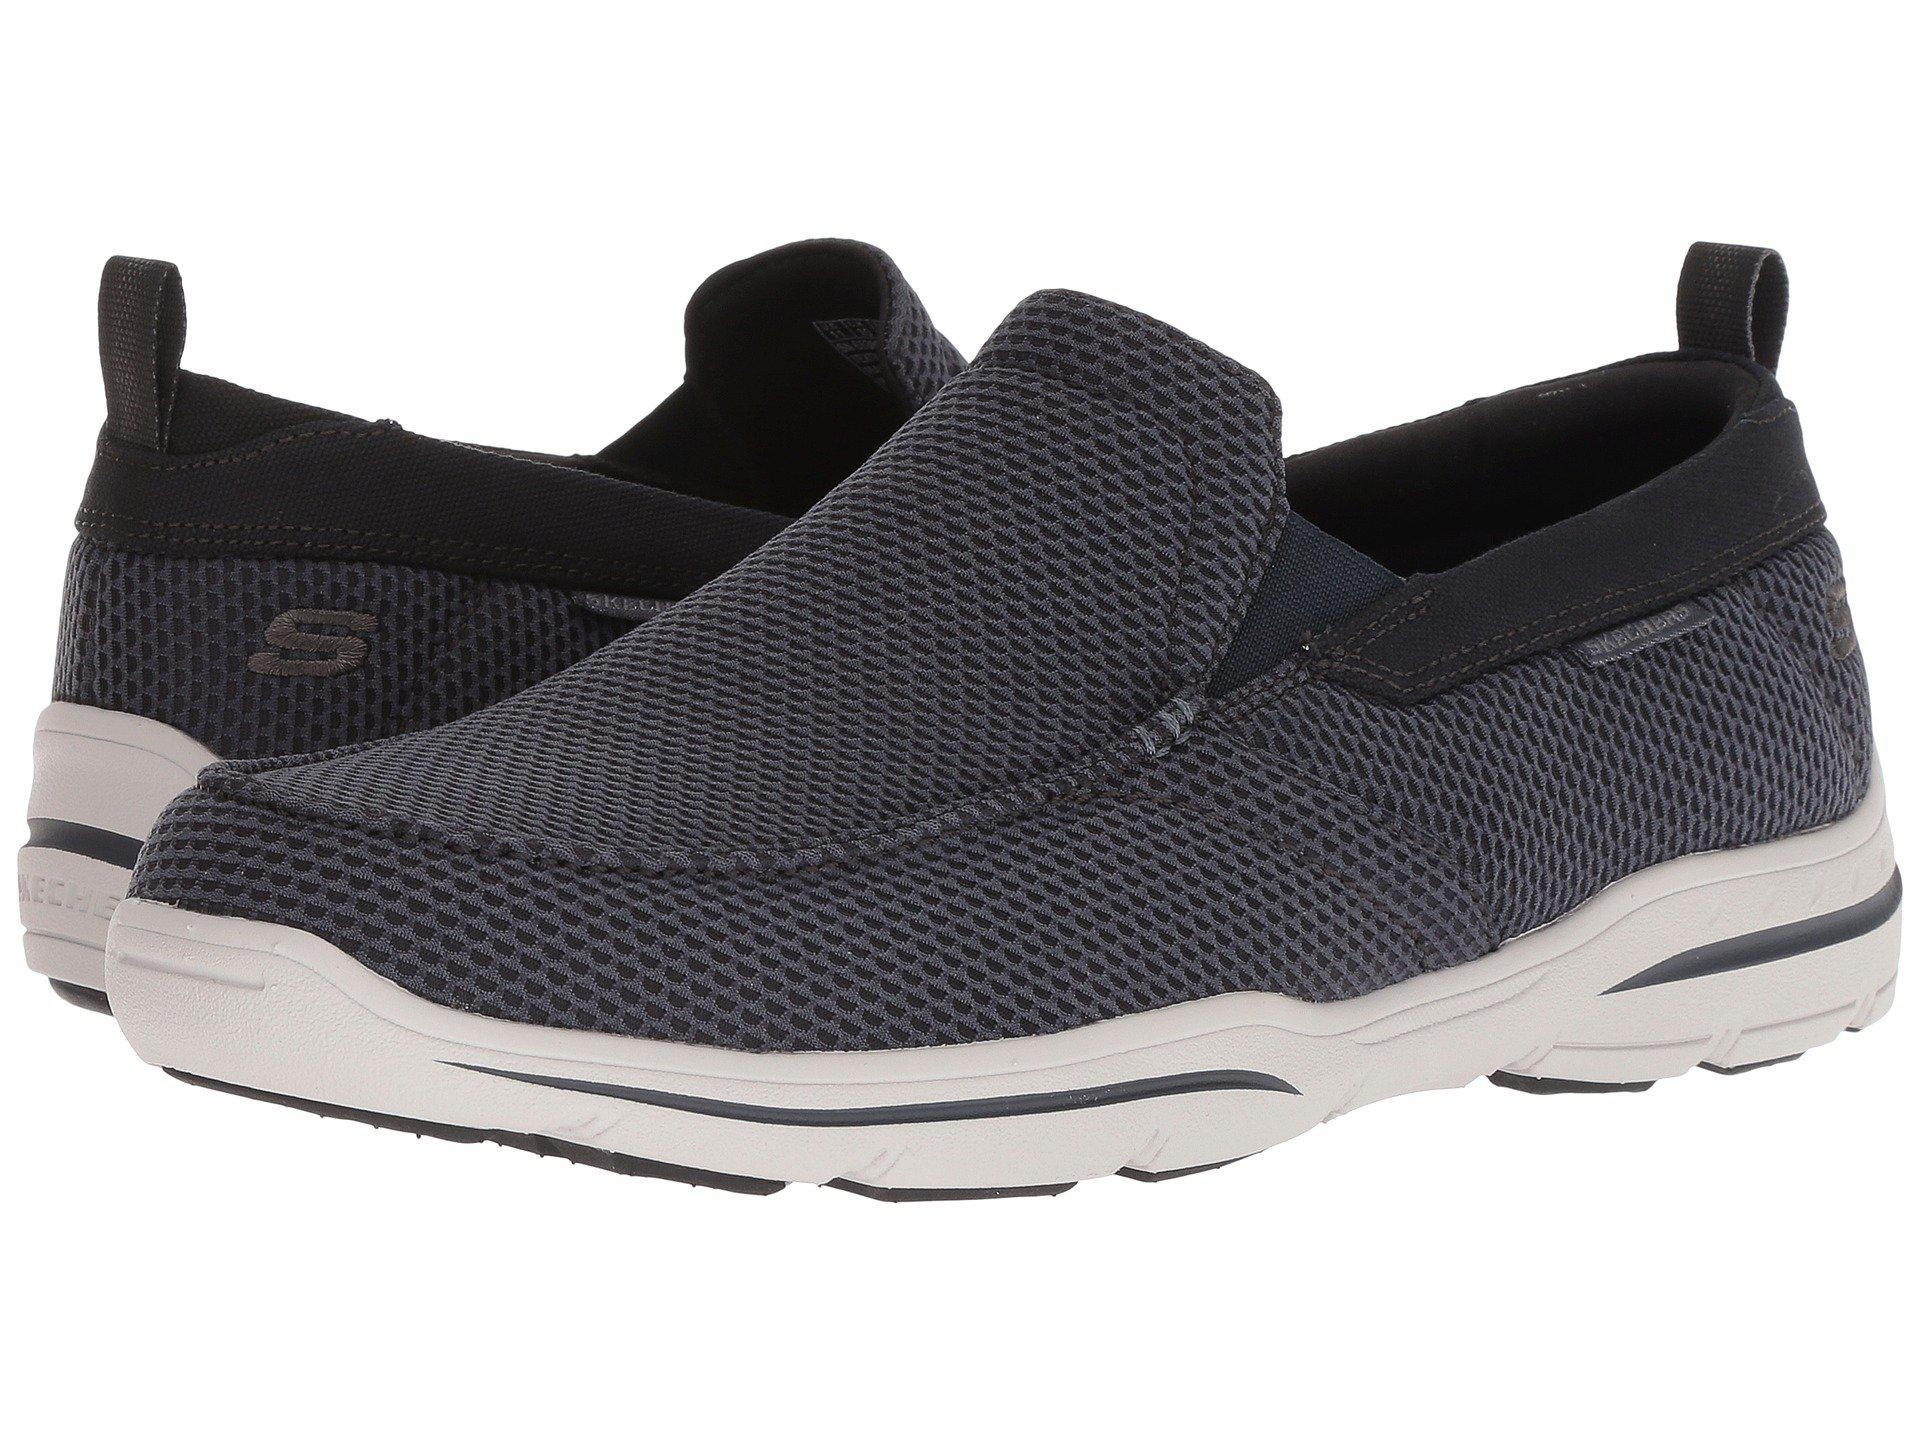 e7dd0d5bdfbc5 skechers-Dark-Navy-Relaxed-Fit-Harper-Walton.jpeg